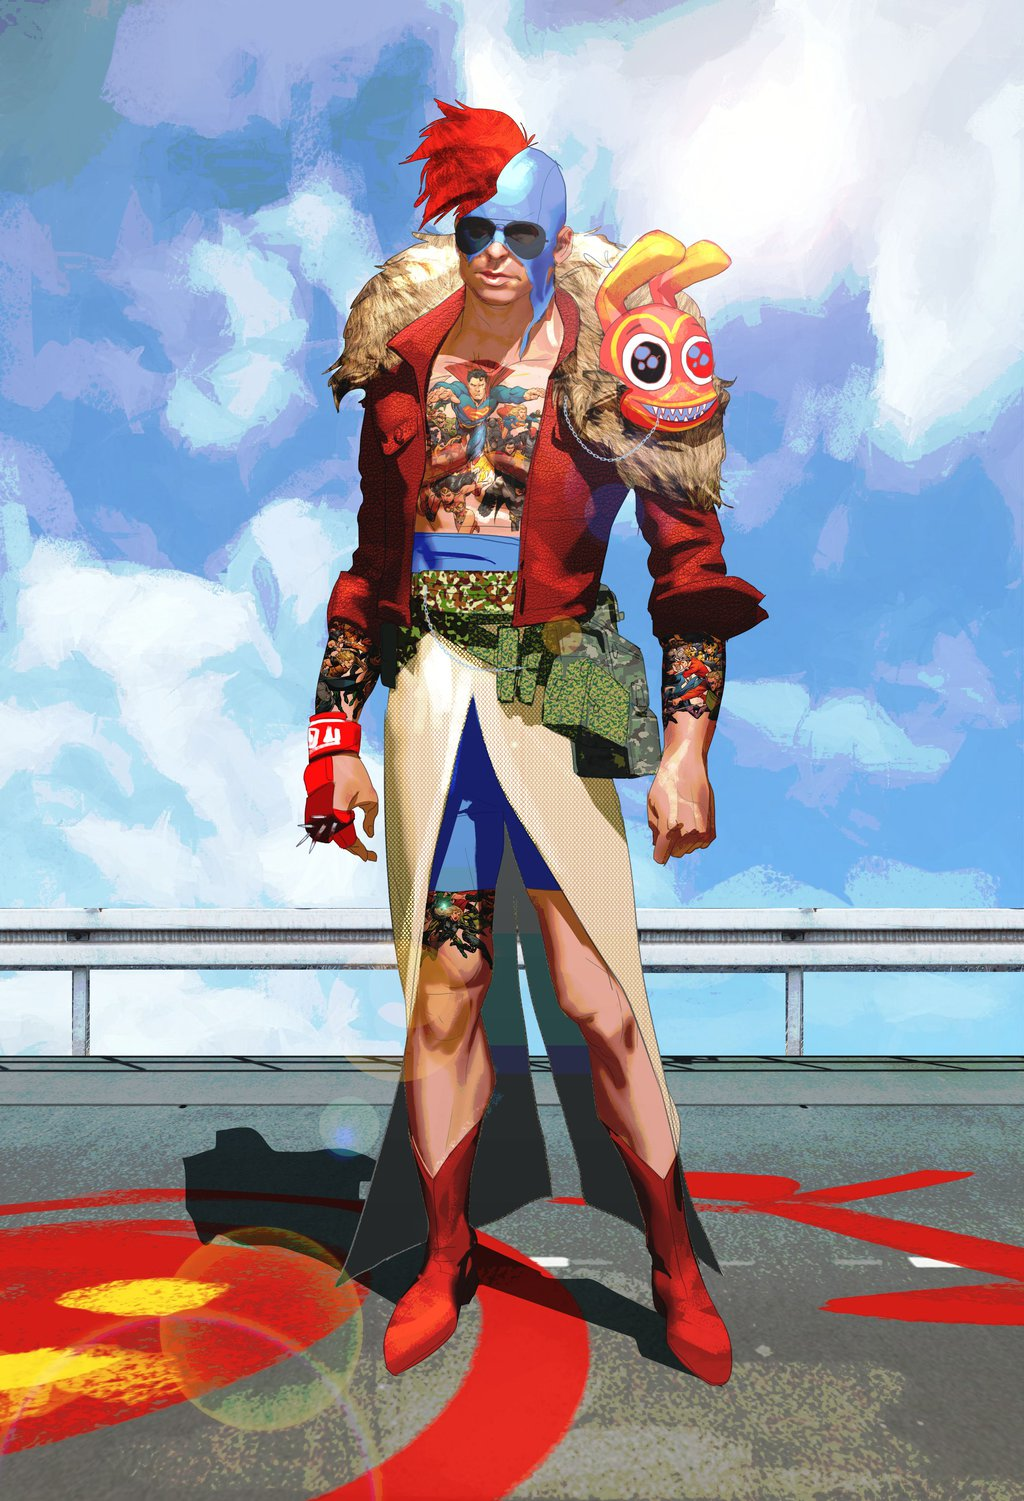 Sunset Overdrive Concept Designs by Julien Renoult